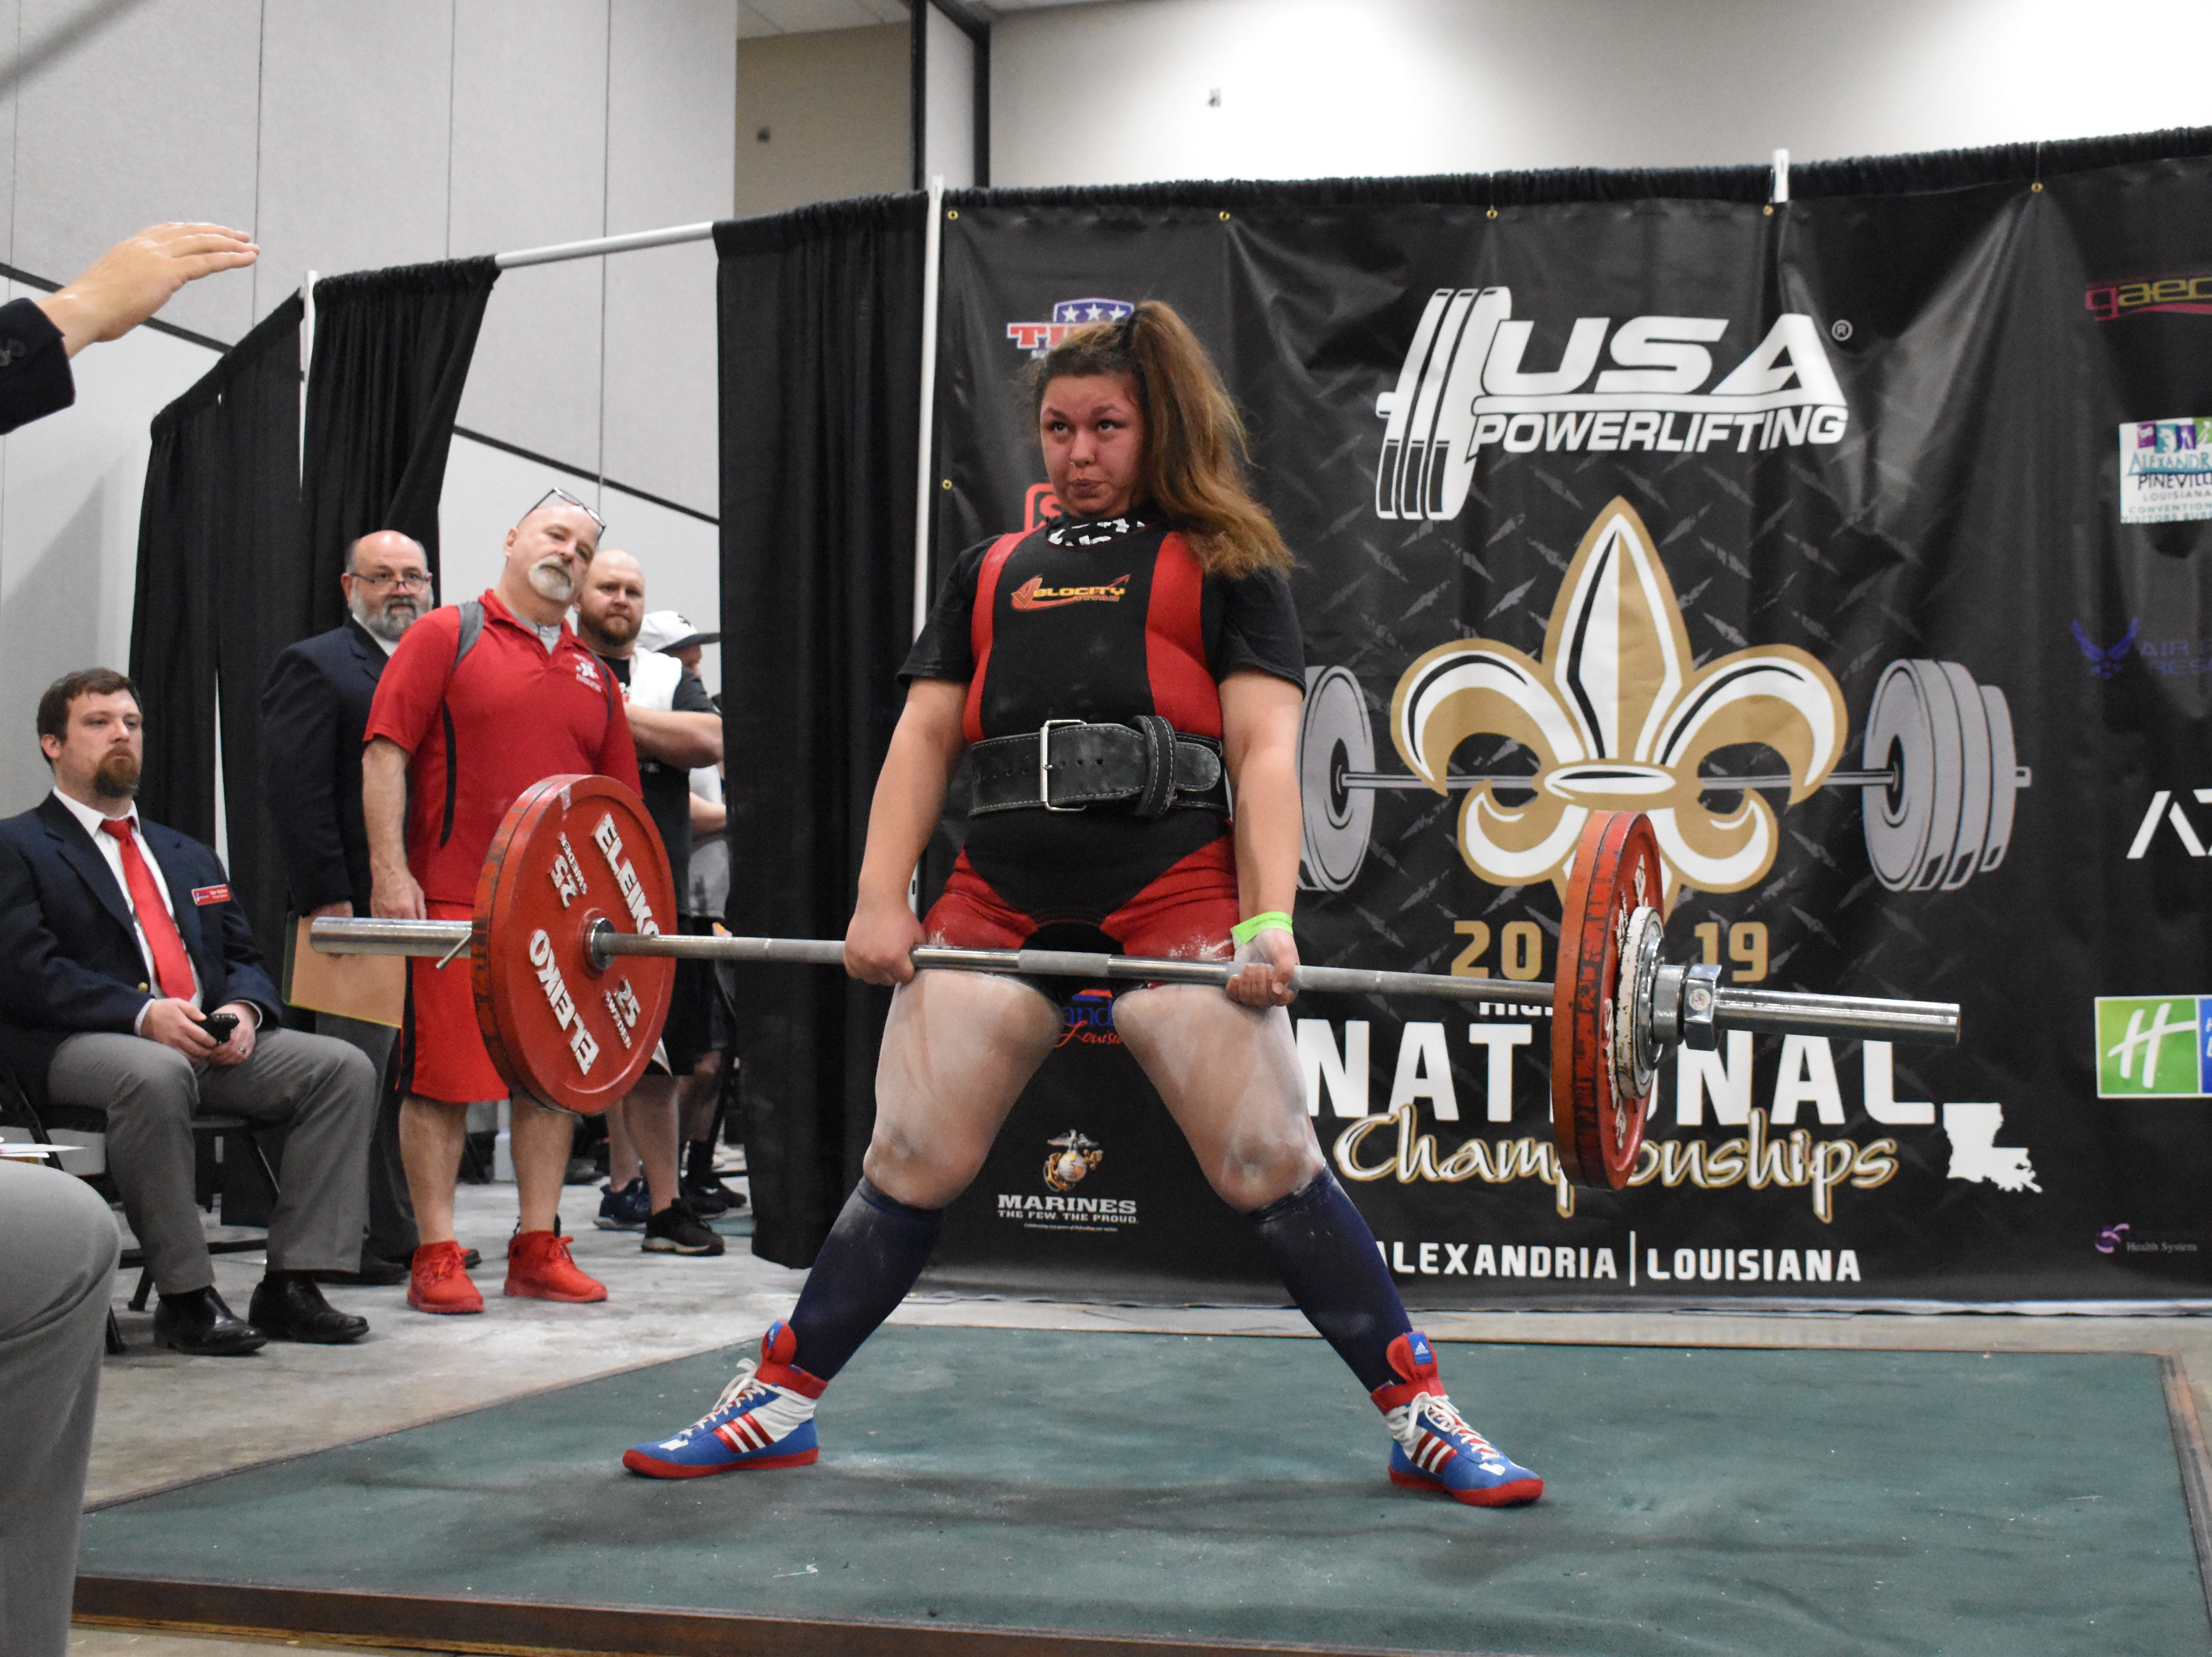 The USA Powerlifting High School National Championships, equipped and raw, are being held at the Randolph Riverfront Center in downtown Alexandria with high school powerlifters from across the country competing in the four-day event. Powerlifters from local schools are also competing.